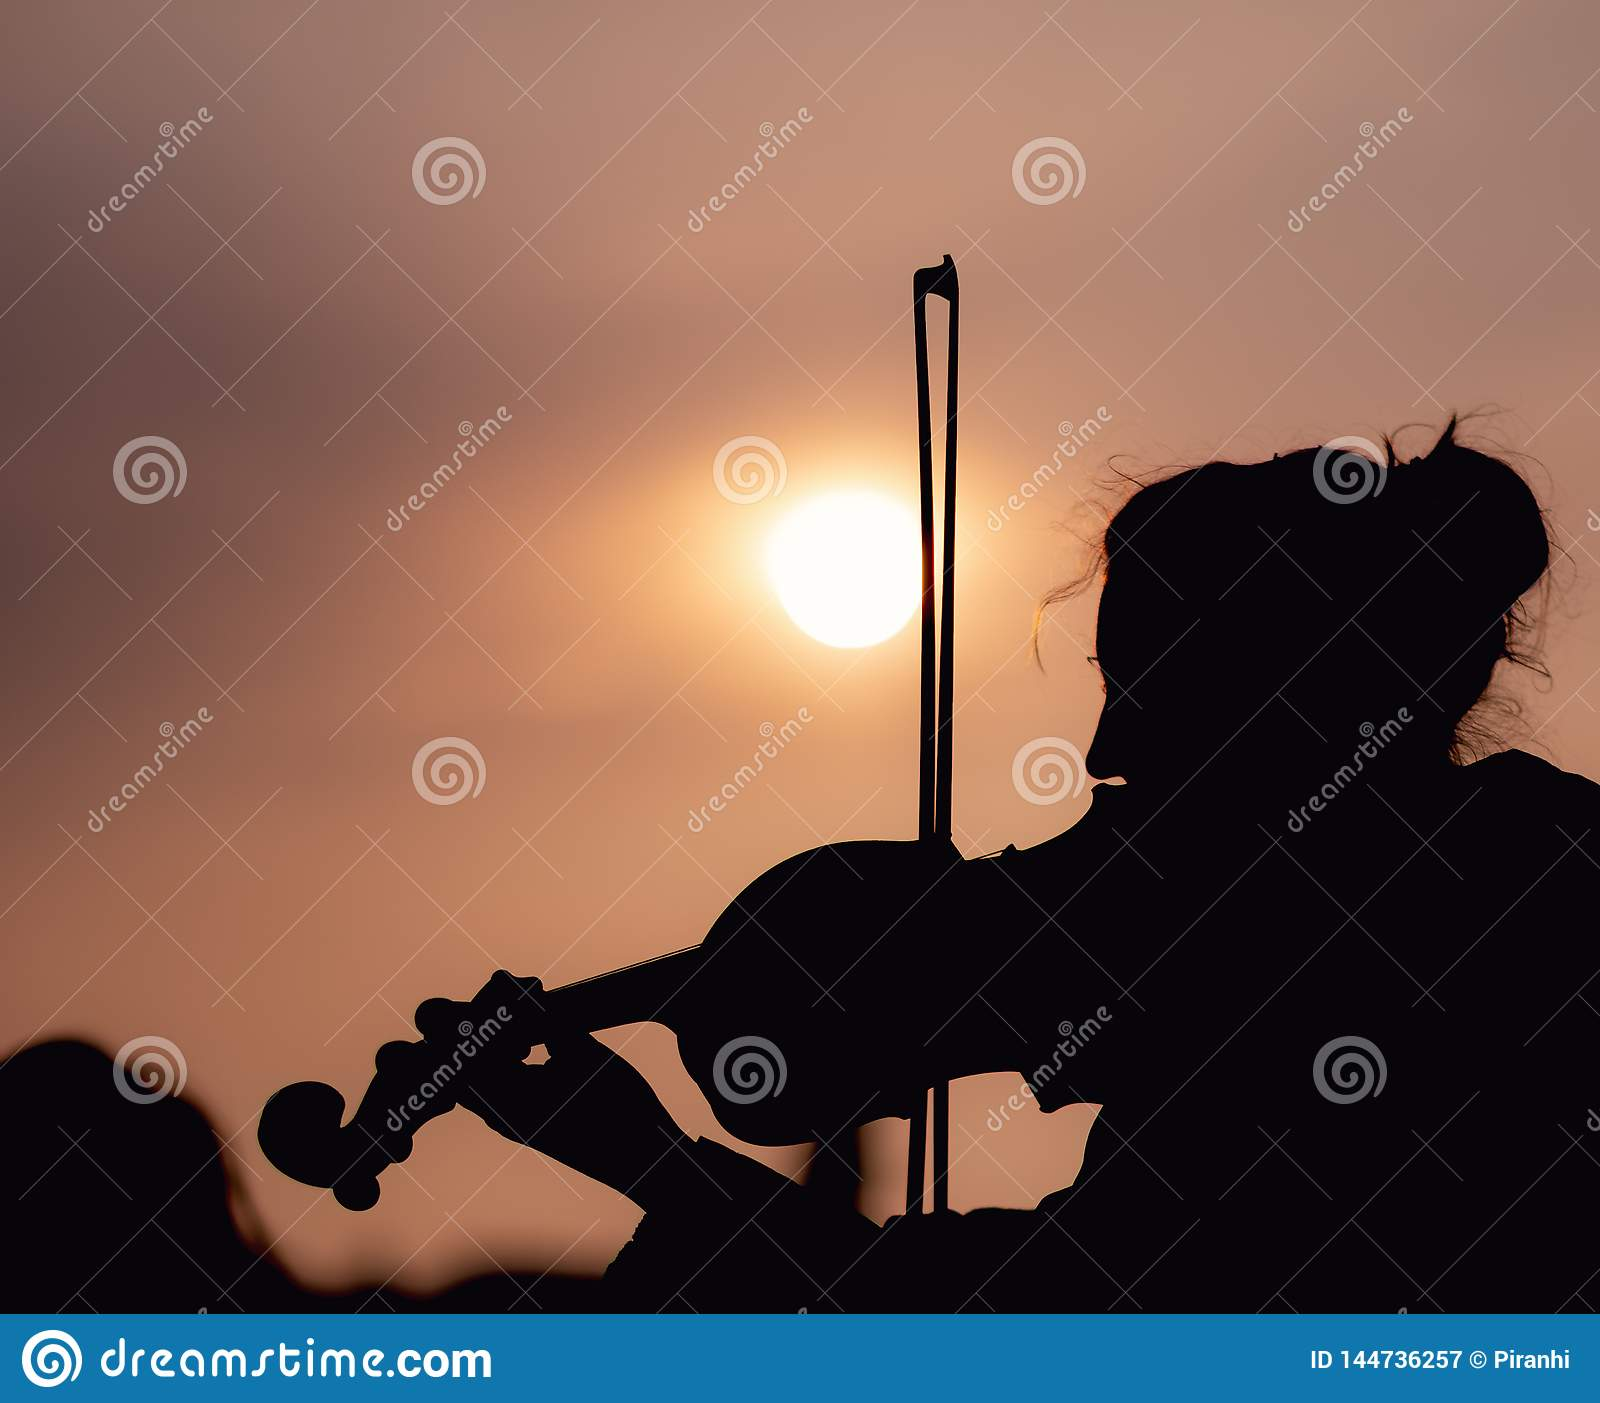 Silhouette of female playing the violin during sunset against the sun - Taken in Prague